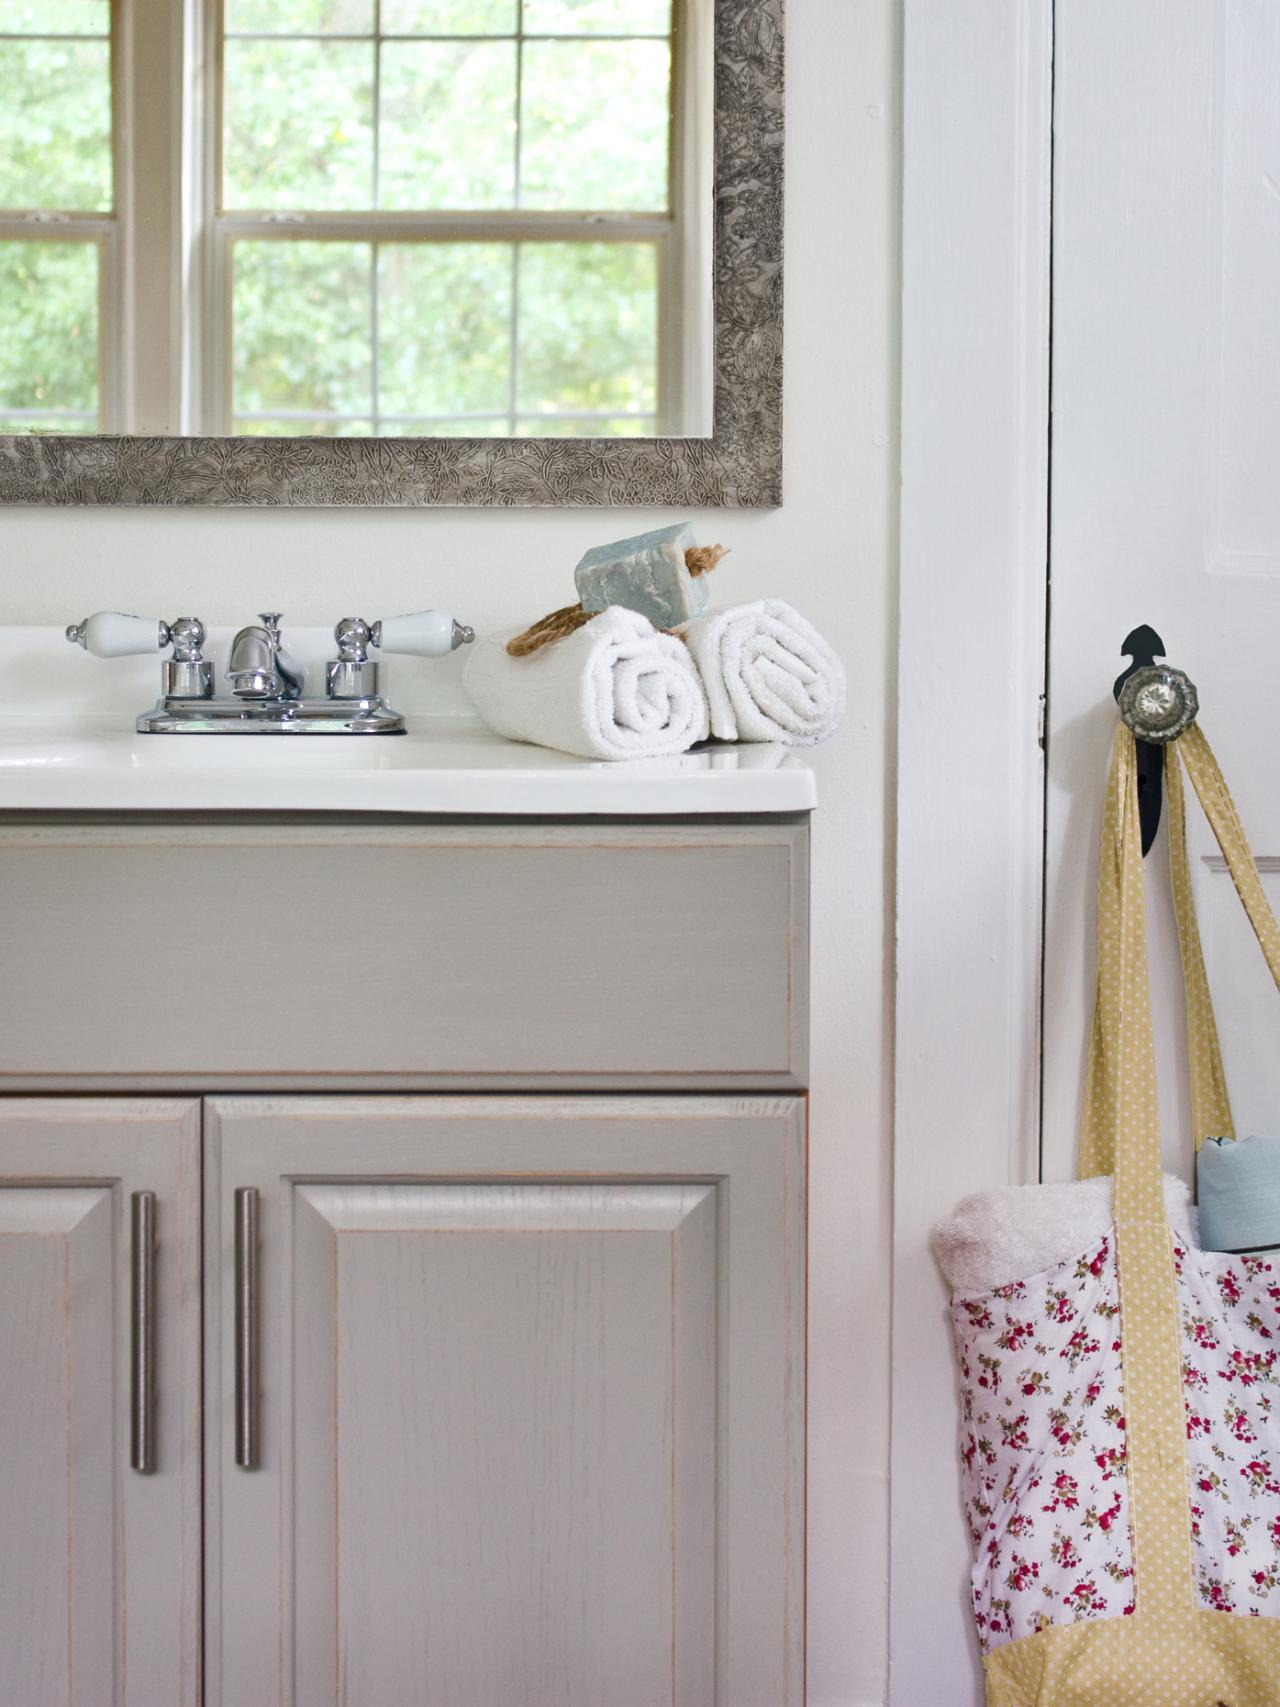 ugr products sink james martin vanity bathroom urban single brittany gray